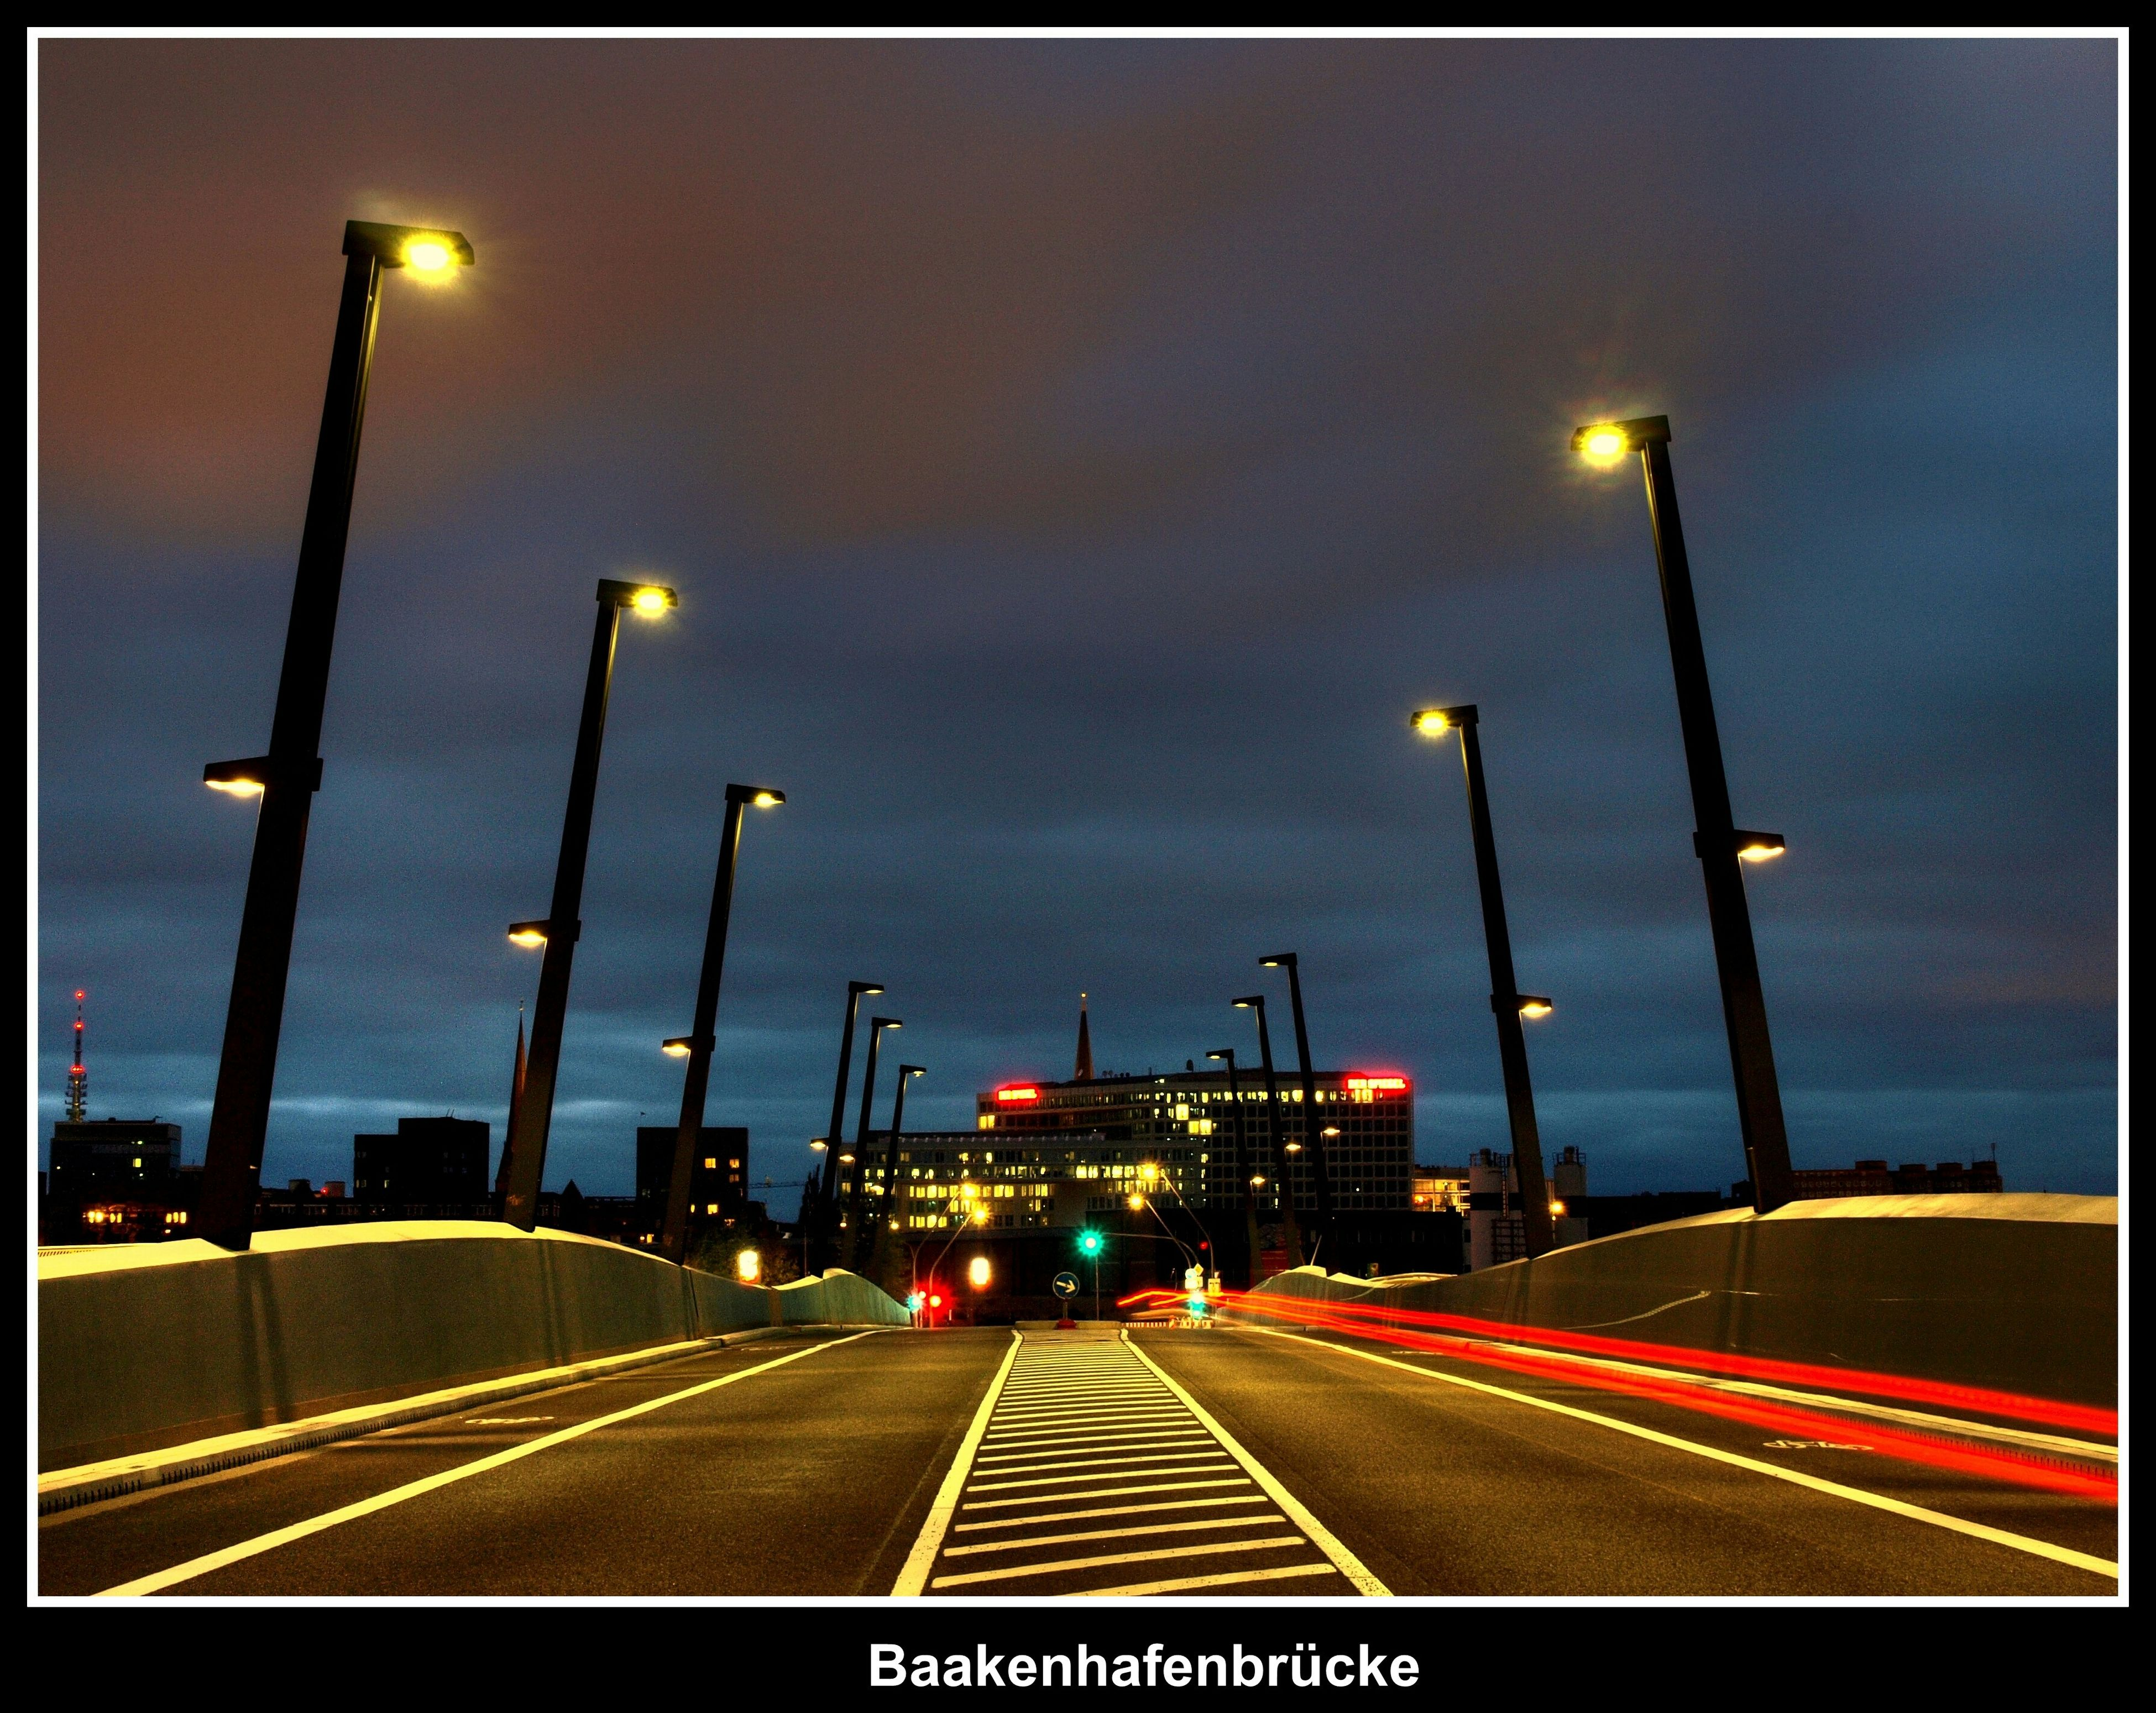 illuminated, the way forward, transportation, road marking, street light, road, sky, transfer print, night, lighting equipment, diminishing perspective, auto post production filter, street, cloud - sky, vanishing point, road sign, car, highway, cloudy, outdoors